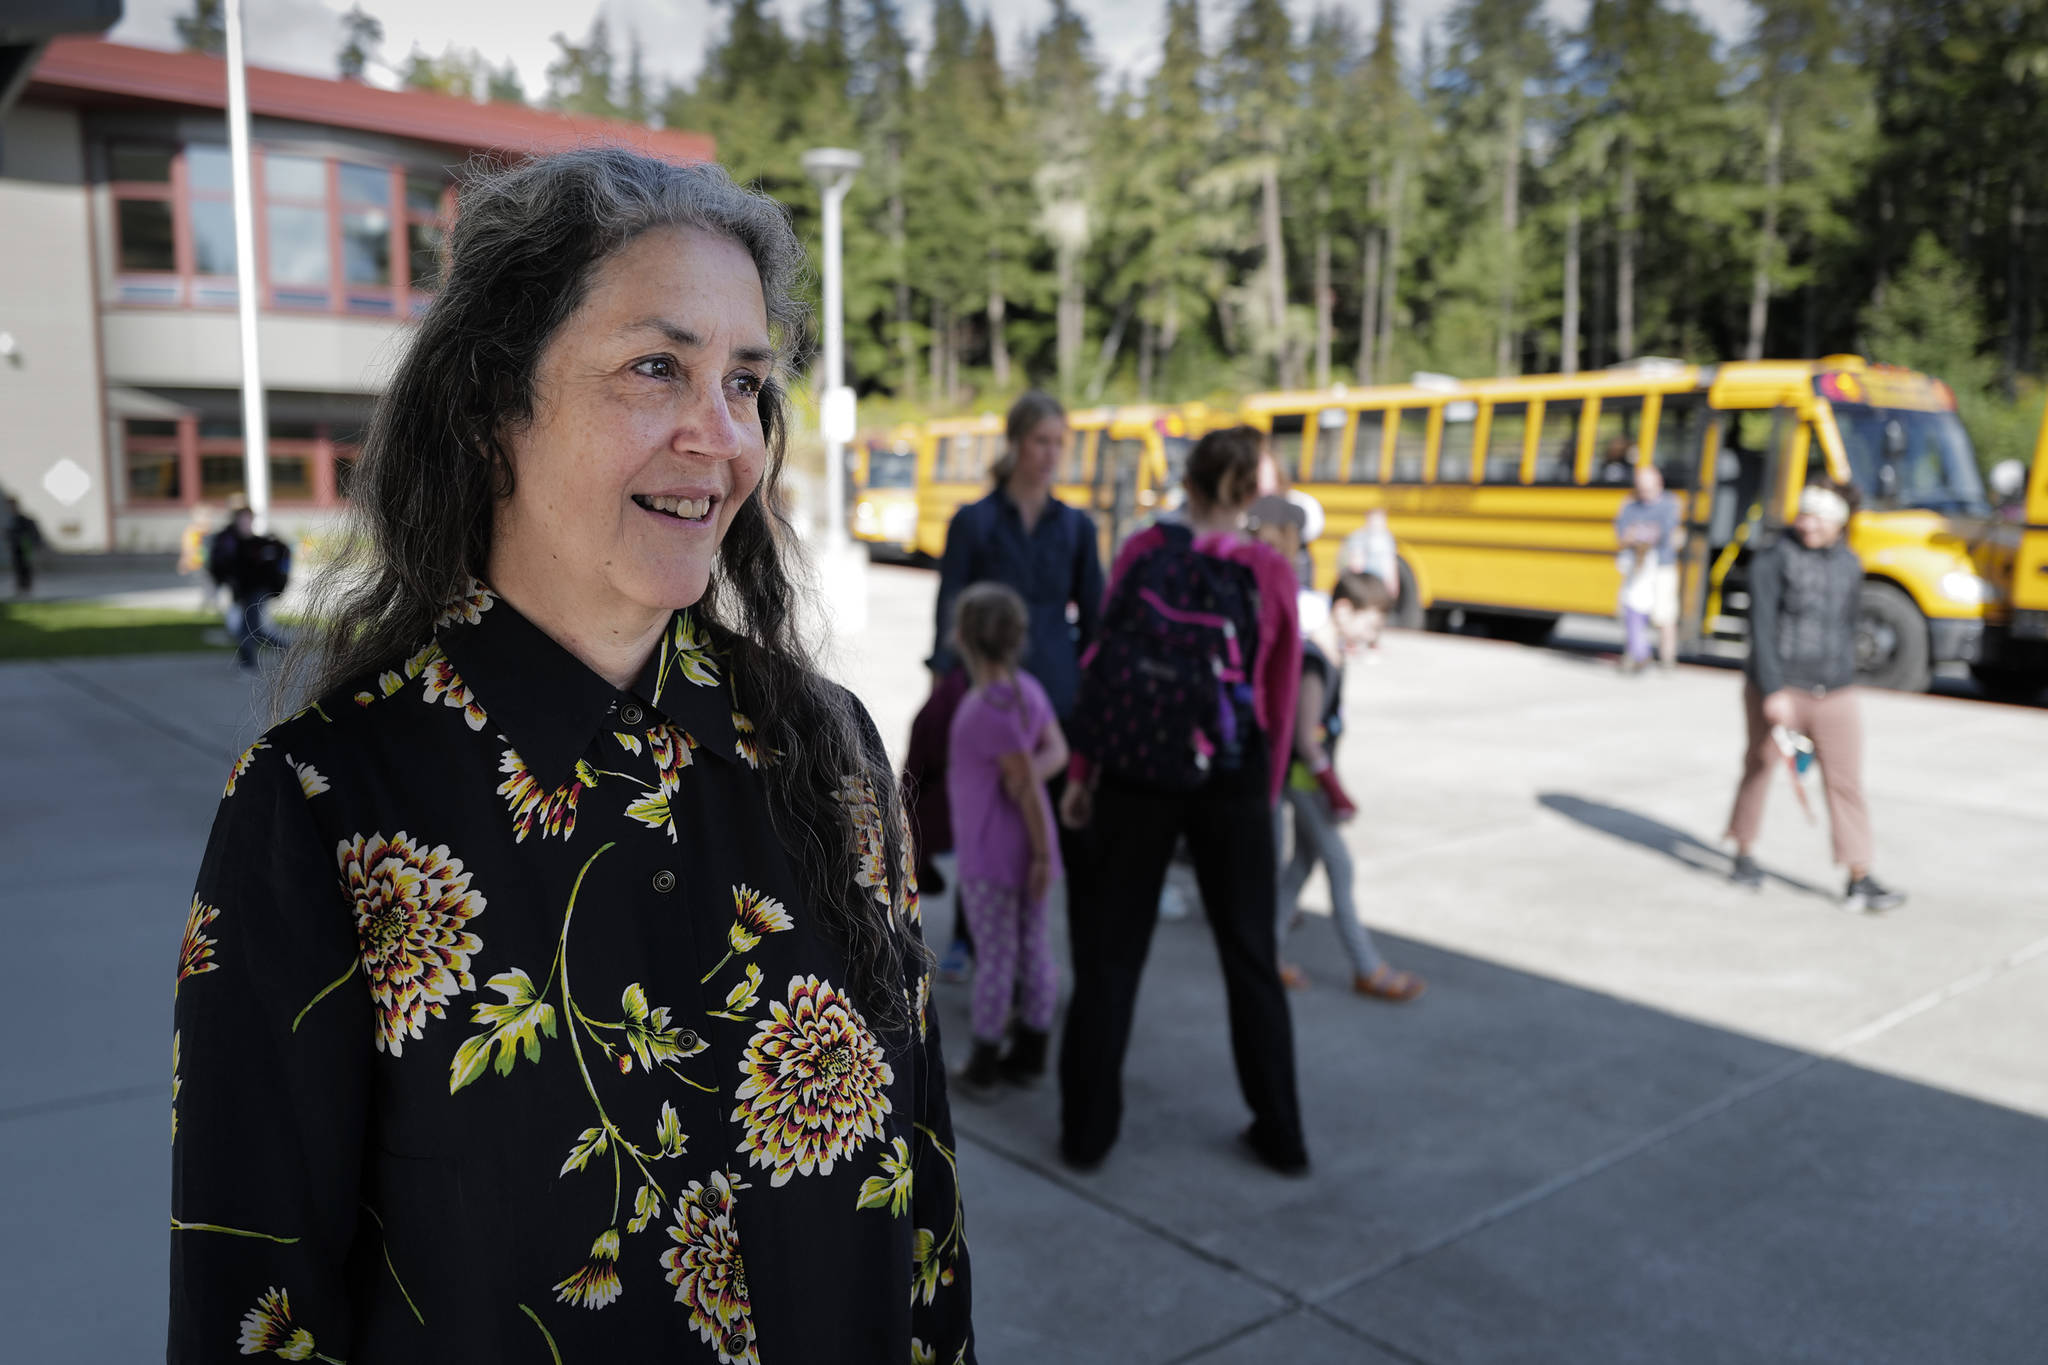 Pam Garcia, a long-time educator at Auke Bay Elementary School, watches as students catch their buses after school on Tuesday, Sept. 3, 2019. Garcia was named as one of three finalist for Alaska Teacher of the Year. (Michael Penn   Juneau Empire)